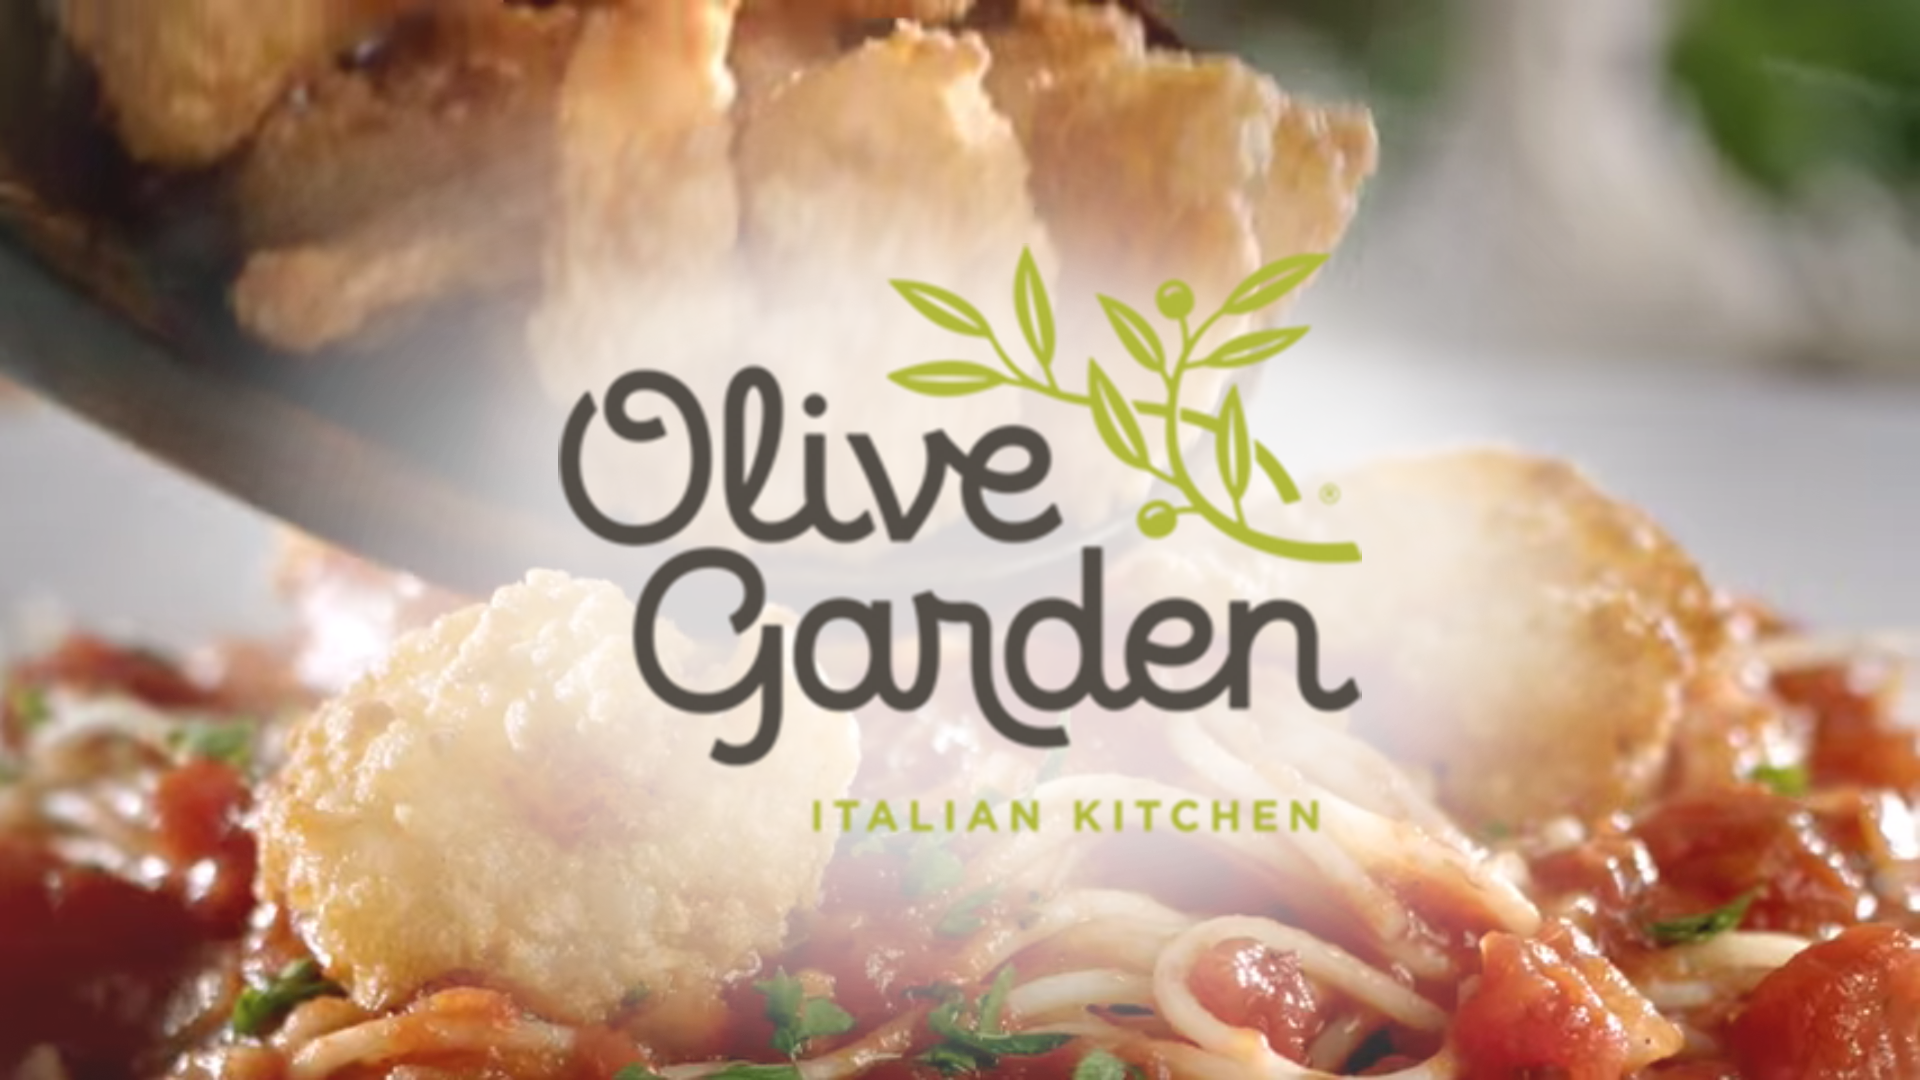 Olive Garden Ends 30 Year Agency Relationship With Grey, Hires Mcgarrybowen  U2013 Adweek